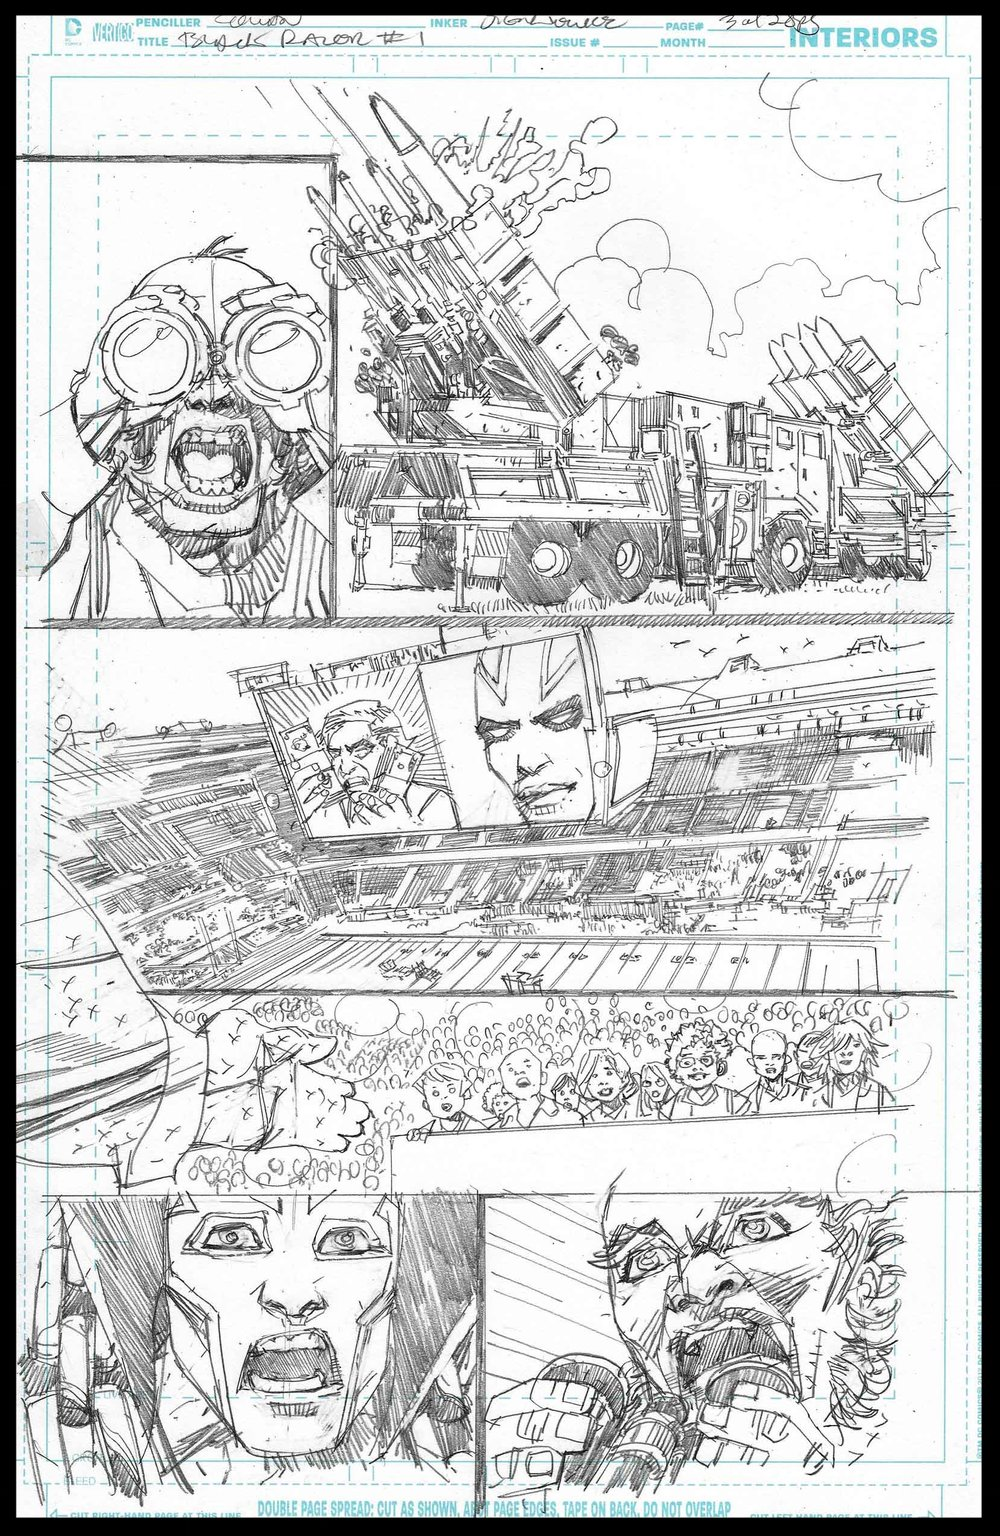 Black Racer #1 - Page 3 - Pencils